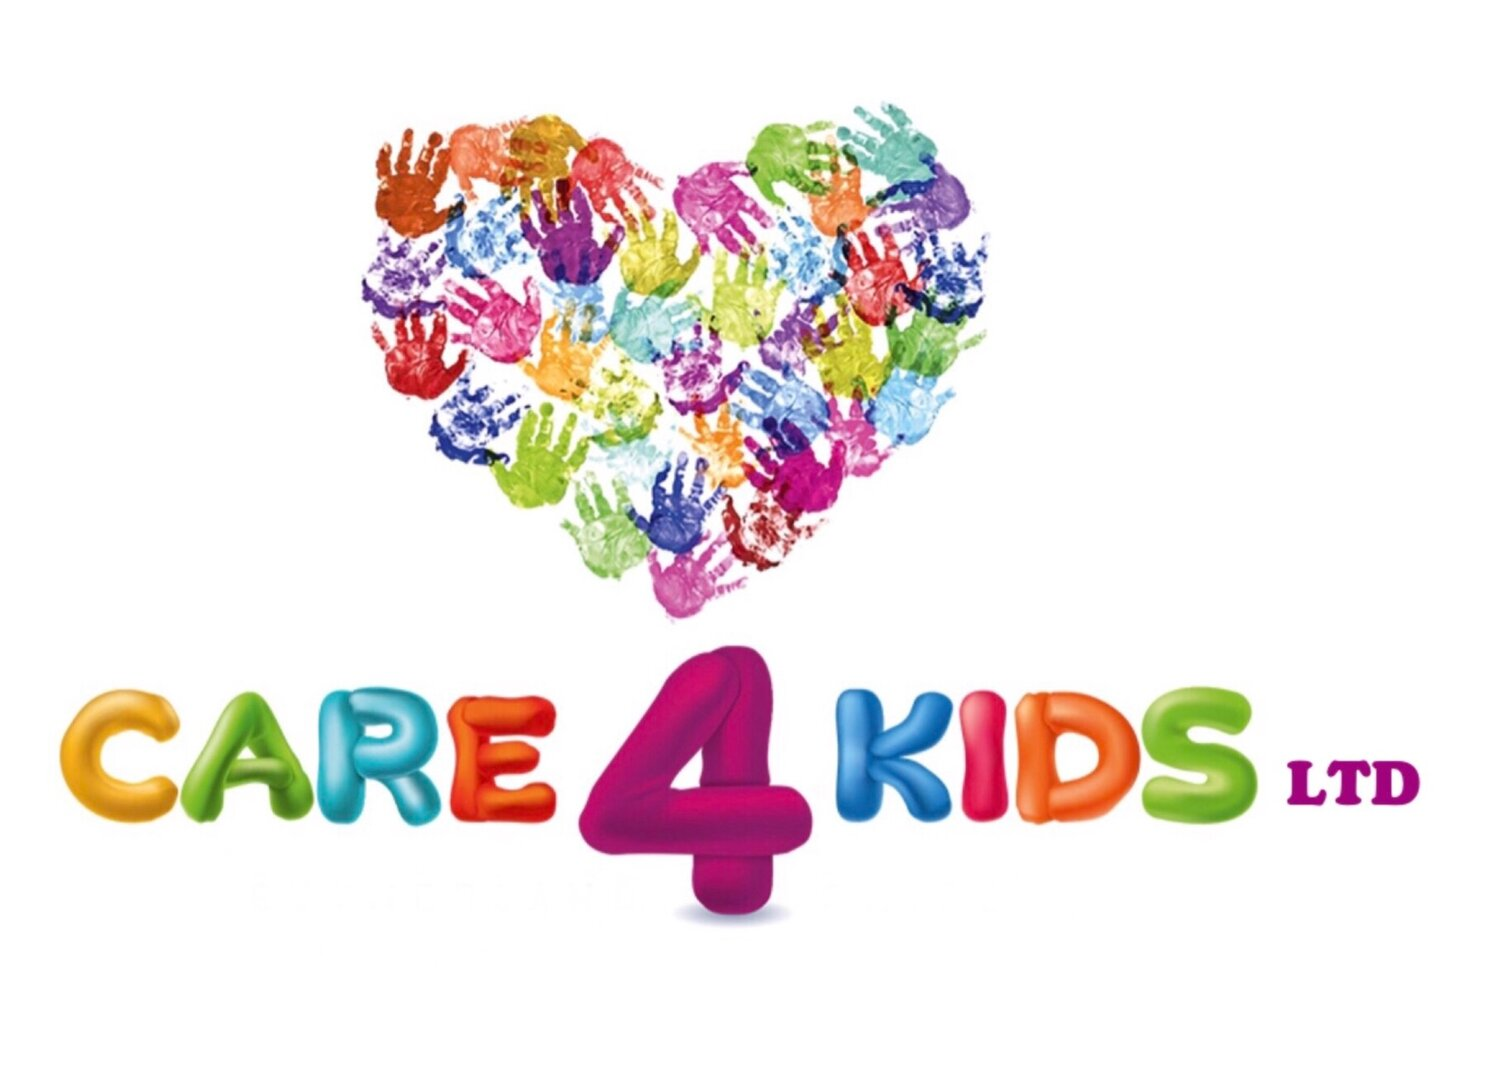 Care 4 Kids Ltd